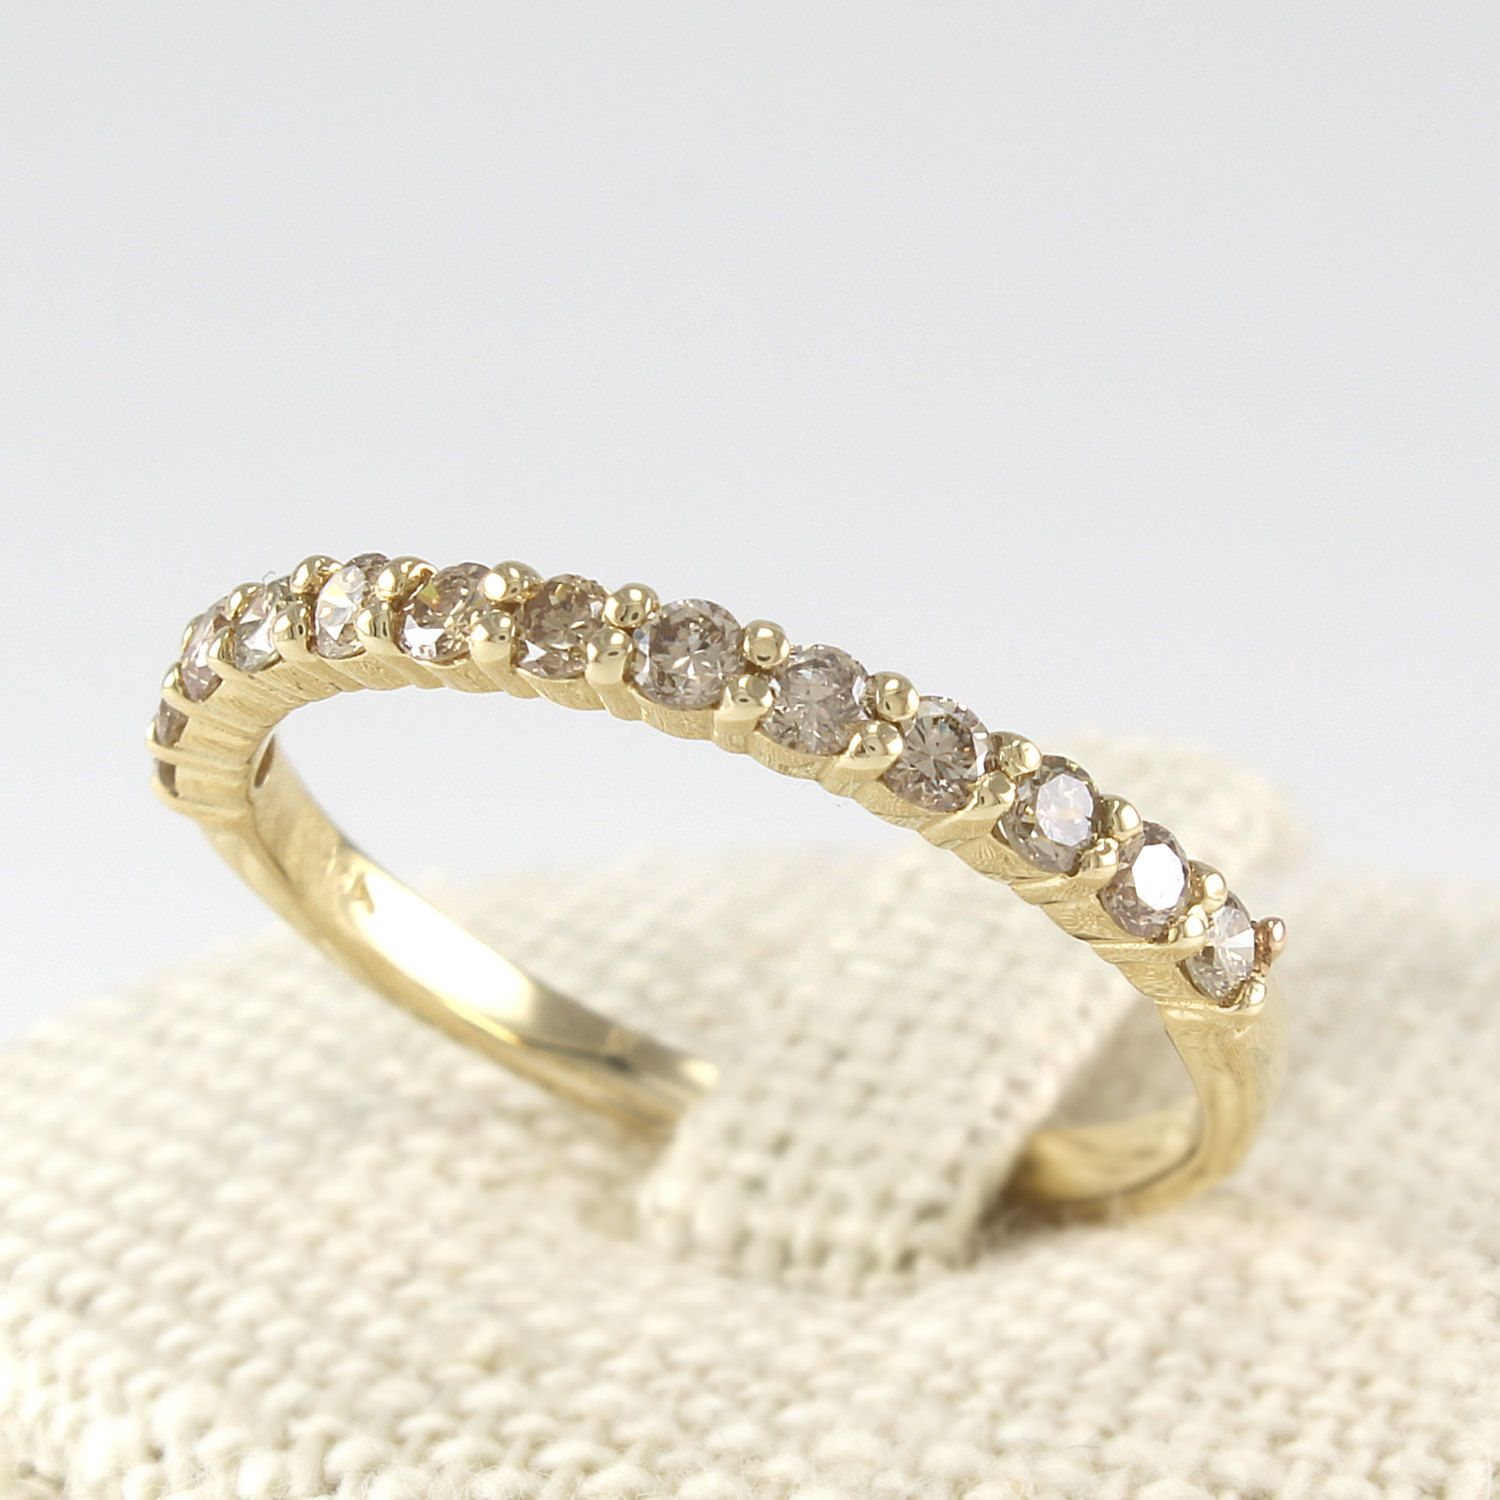 vir b gold ring brown src diamond jewelry champagne net ct cloudfront prod stone kmart white engagement jewels rings s